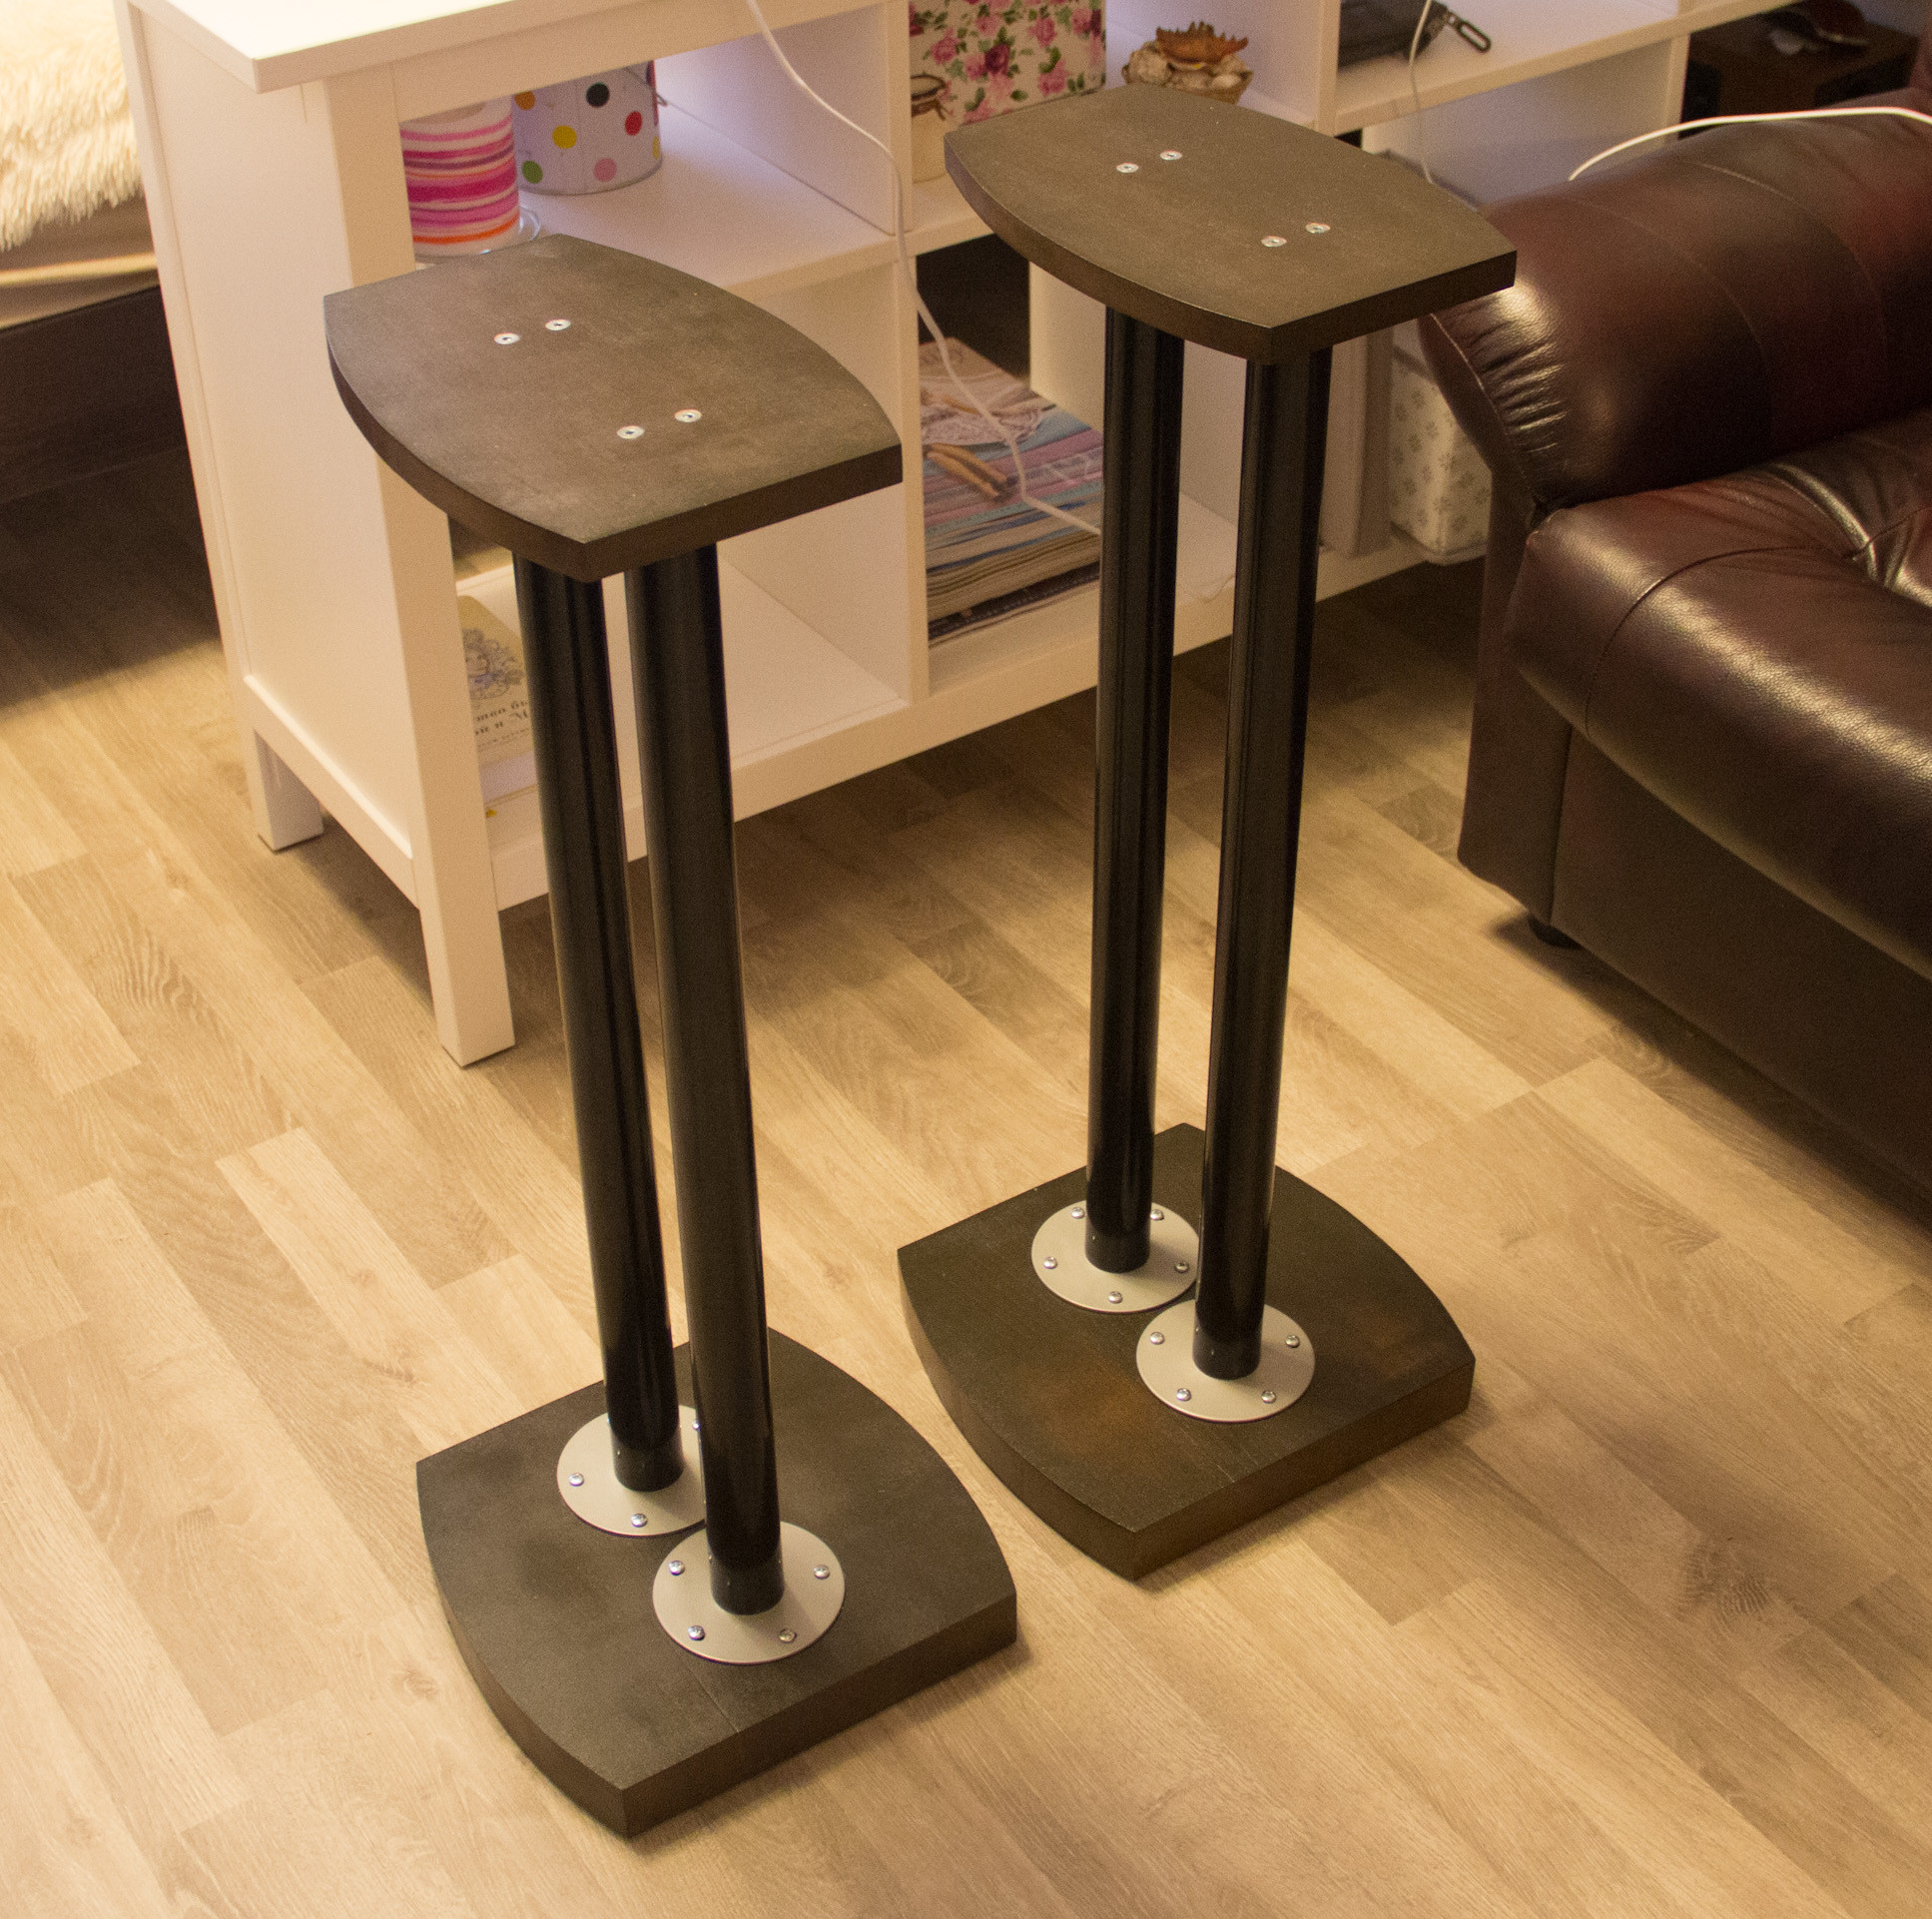 Best ideas about Speaker Stands DIY . Save or Pin Beginner Bud Audiophile – Wharfedale Diamond 10 1 and Now.